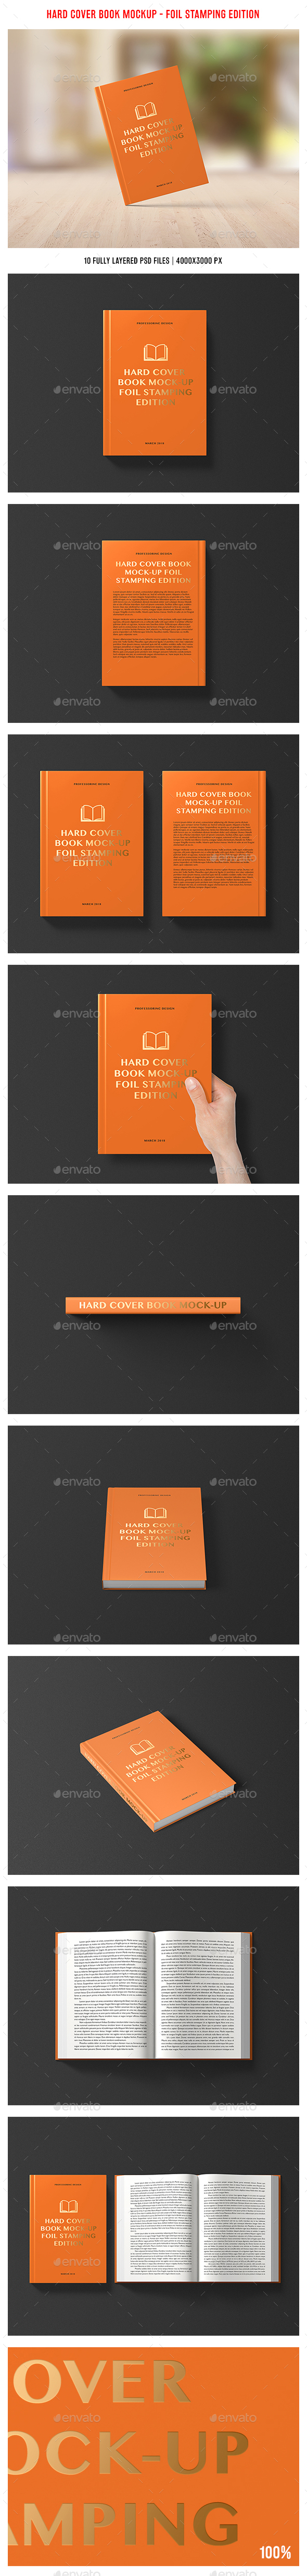 Hard Cover Book Mockup - Foil Stamping Edition - Books Print